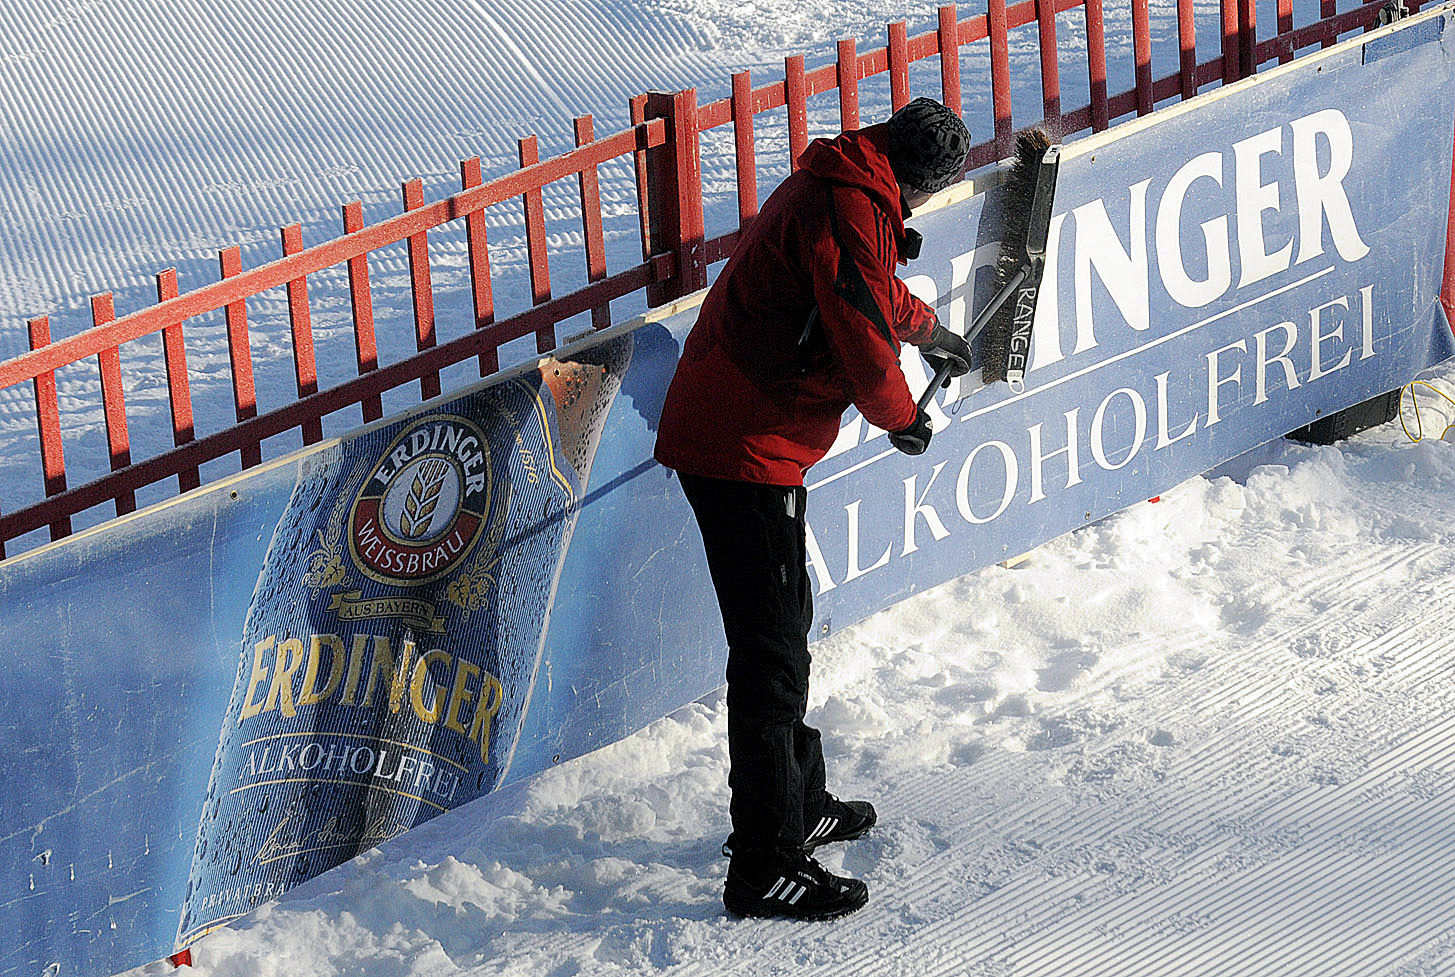 A volunteer cleans the frost from an Erdinger advertisement at the 10th Mountain Ski Center in Fort Kent on Thrusday morning.